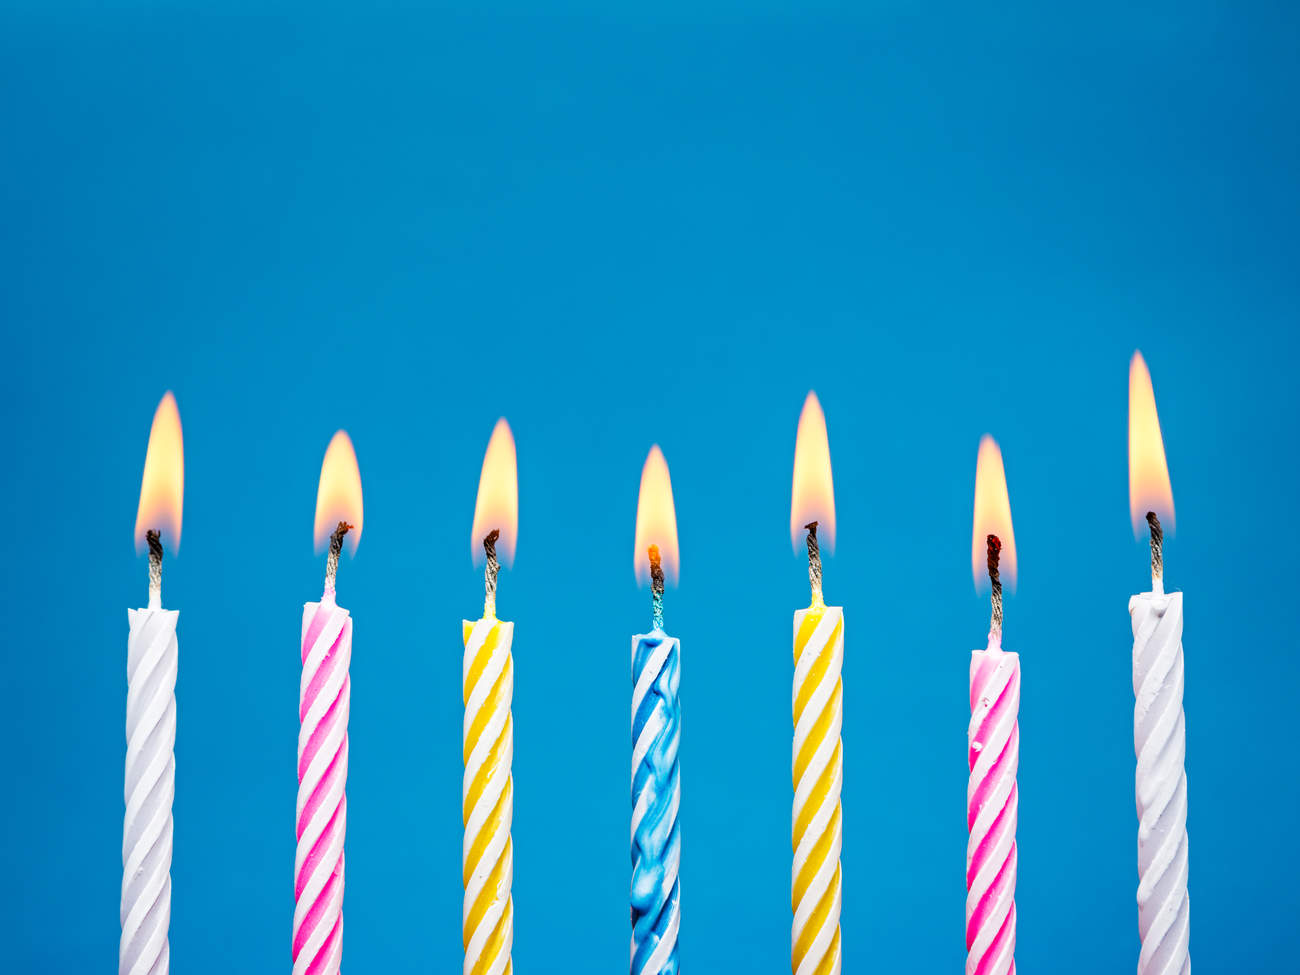 Flaming Birthday Candles on blue background TIME health stock